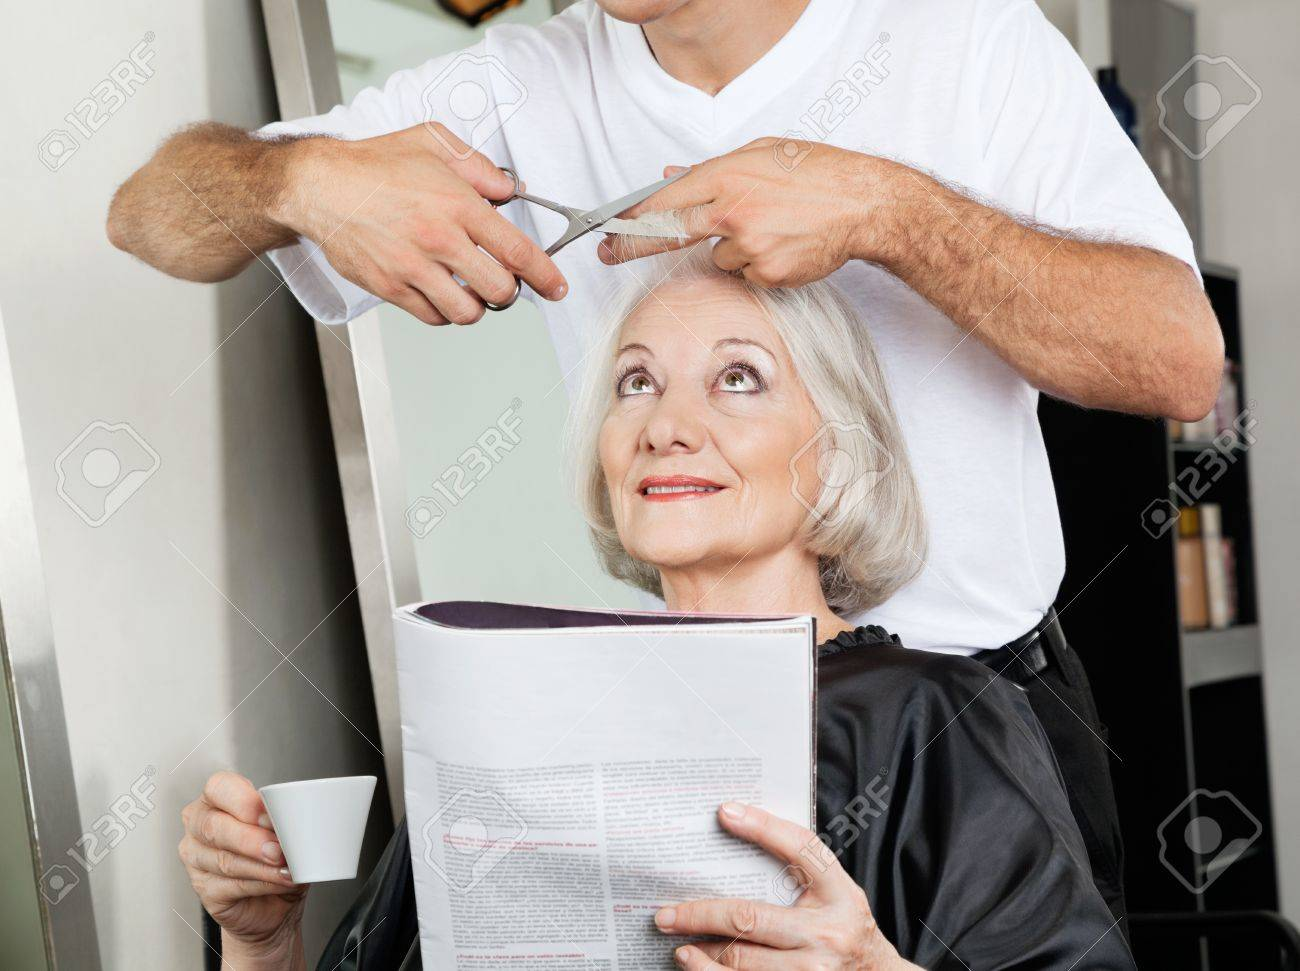 Salon Senior Senior Woman Having Haircut At Salon